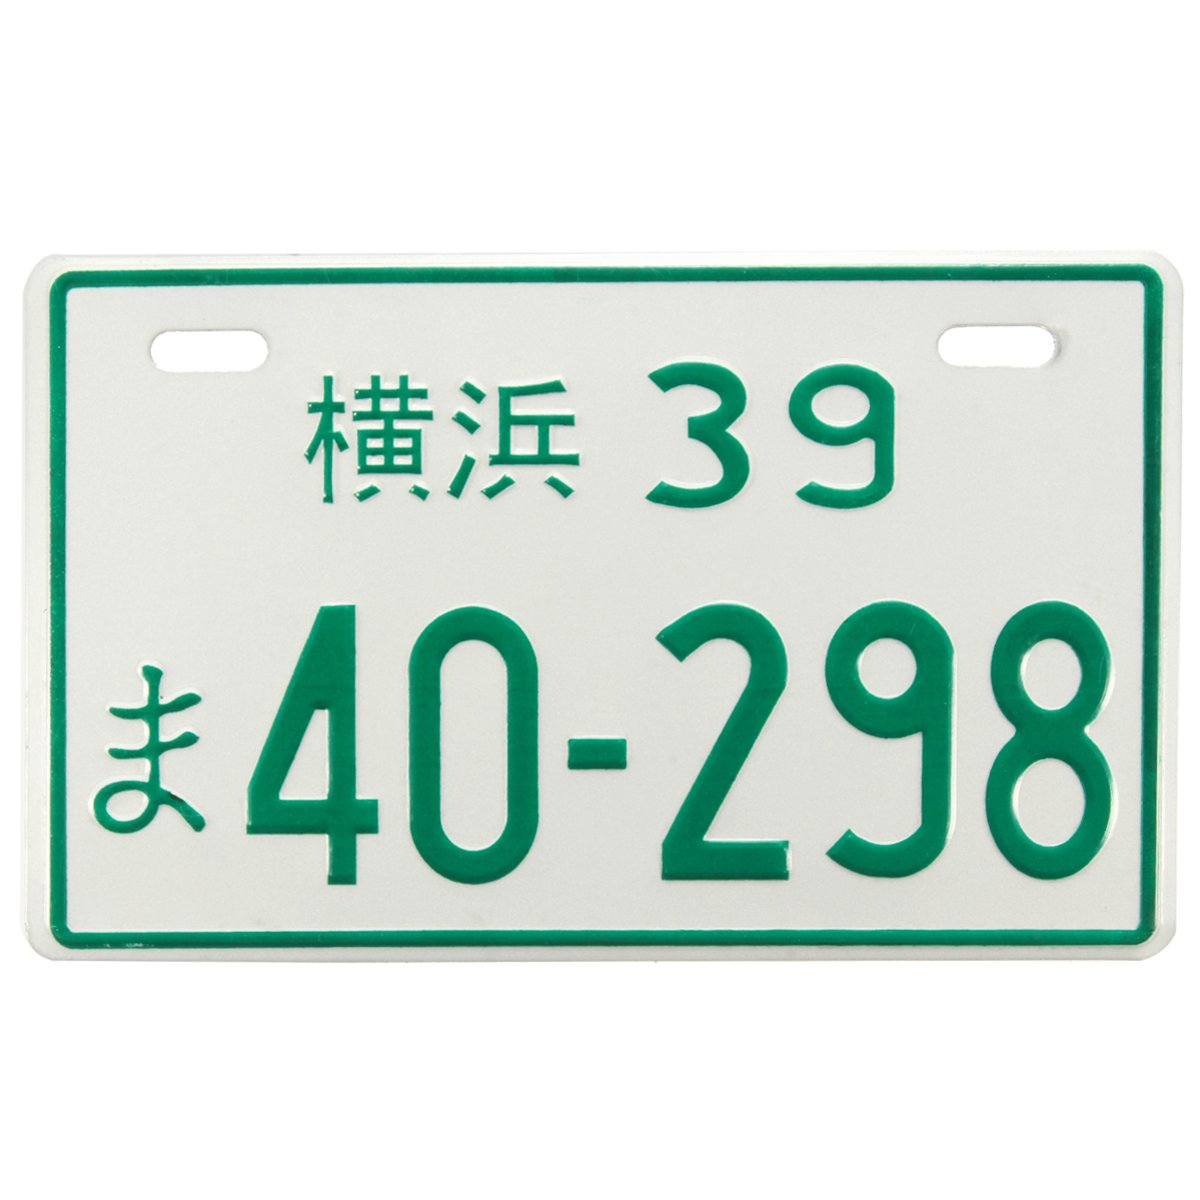 Universal Number Mini Japanese License Plate Aluminum For Motorcycle Car